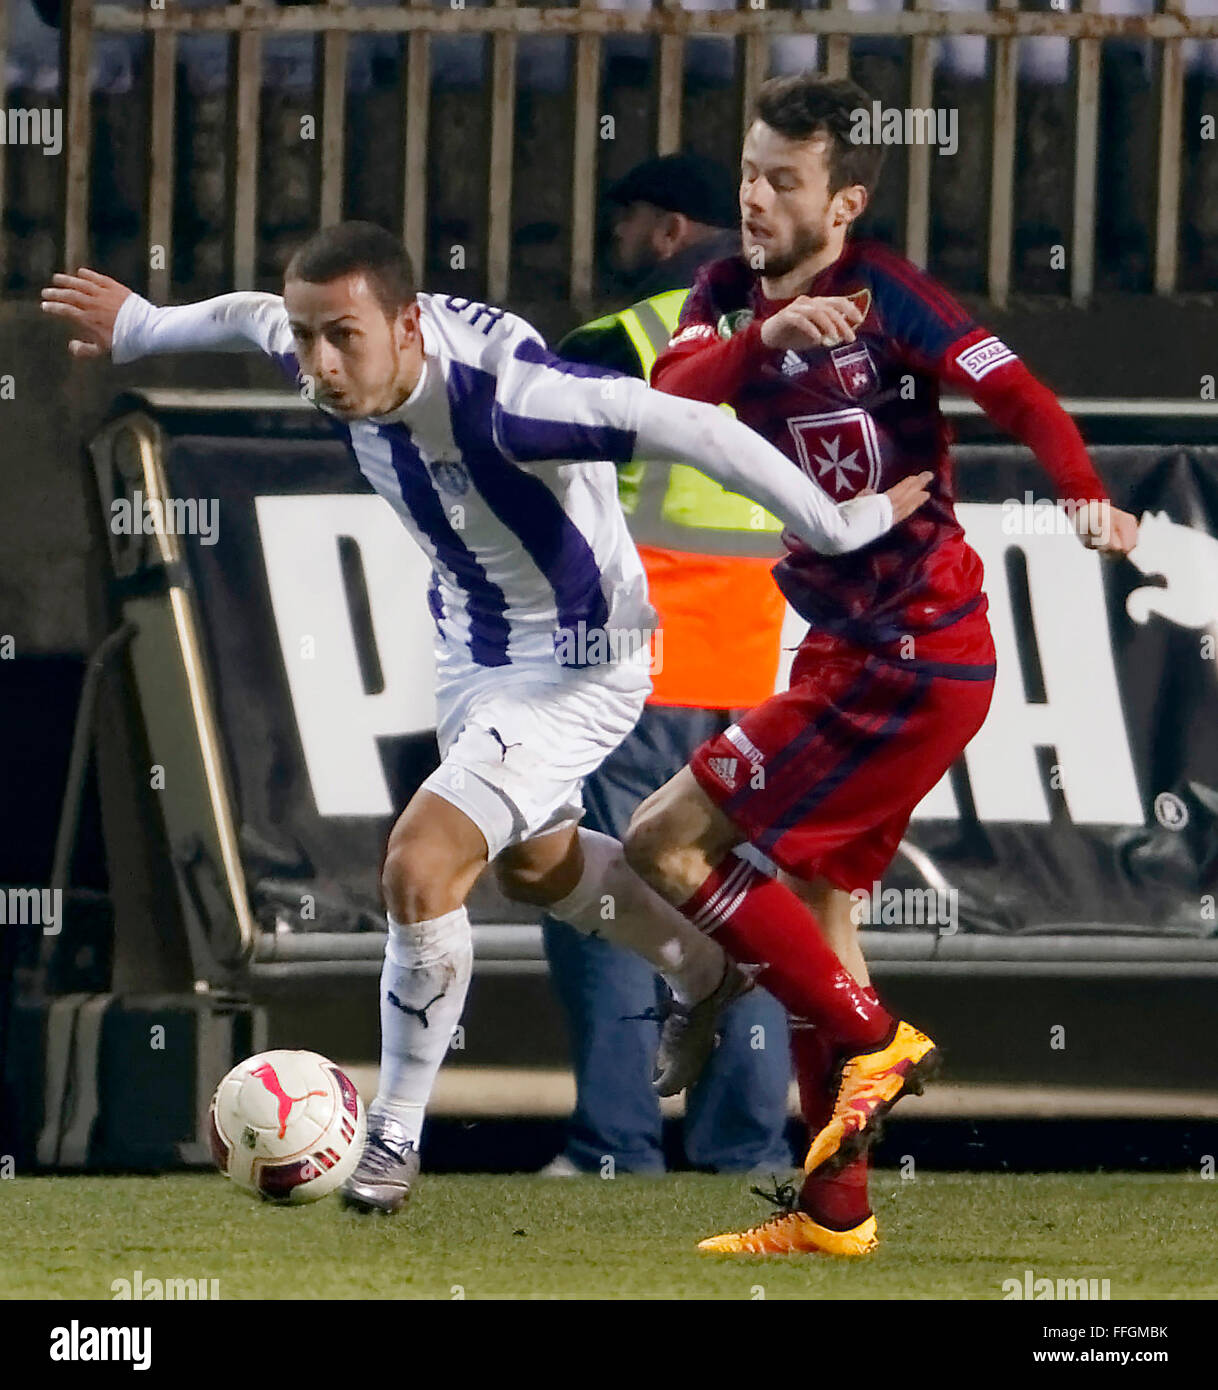 Budapest, Hungary. 13th Feb, 2016. Kylian Hazard of Ujpest (l) tries to overtake Asmir Suljic of Videoton during - Stock Image